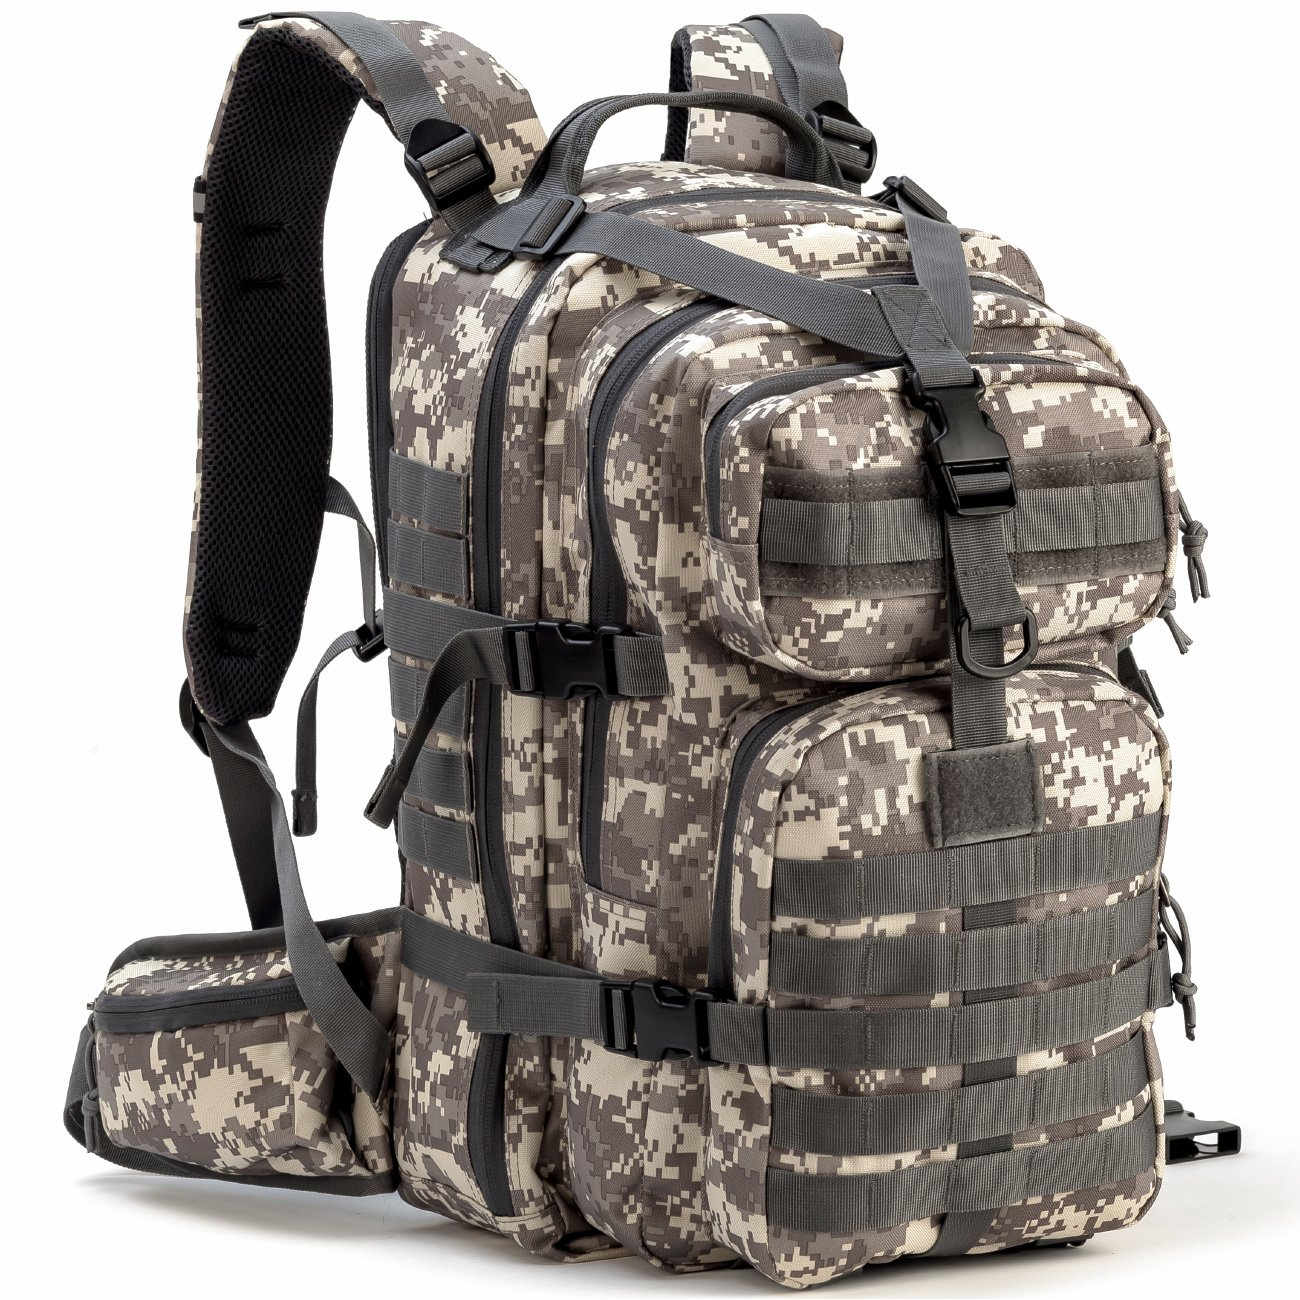 Gelindo Military Tactical Backpack Camouflage